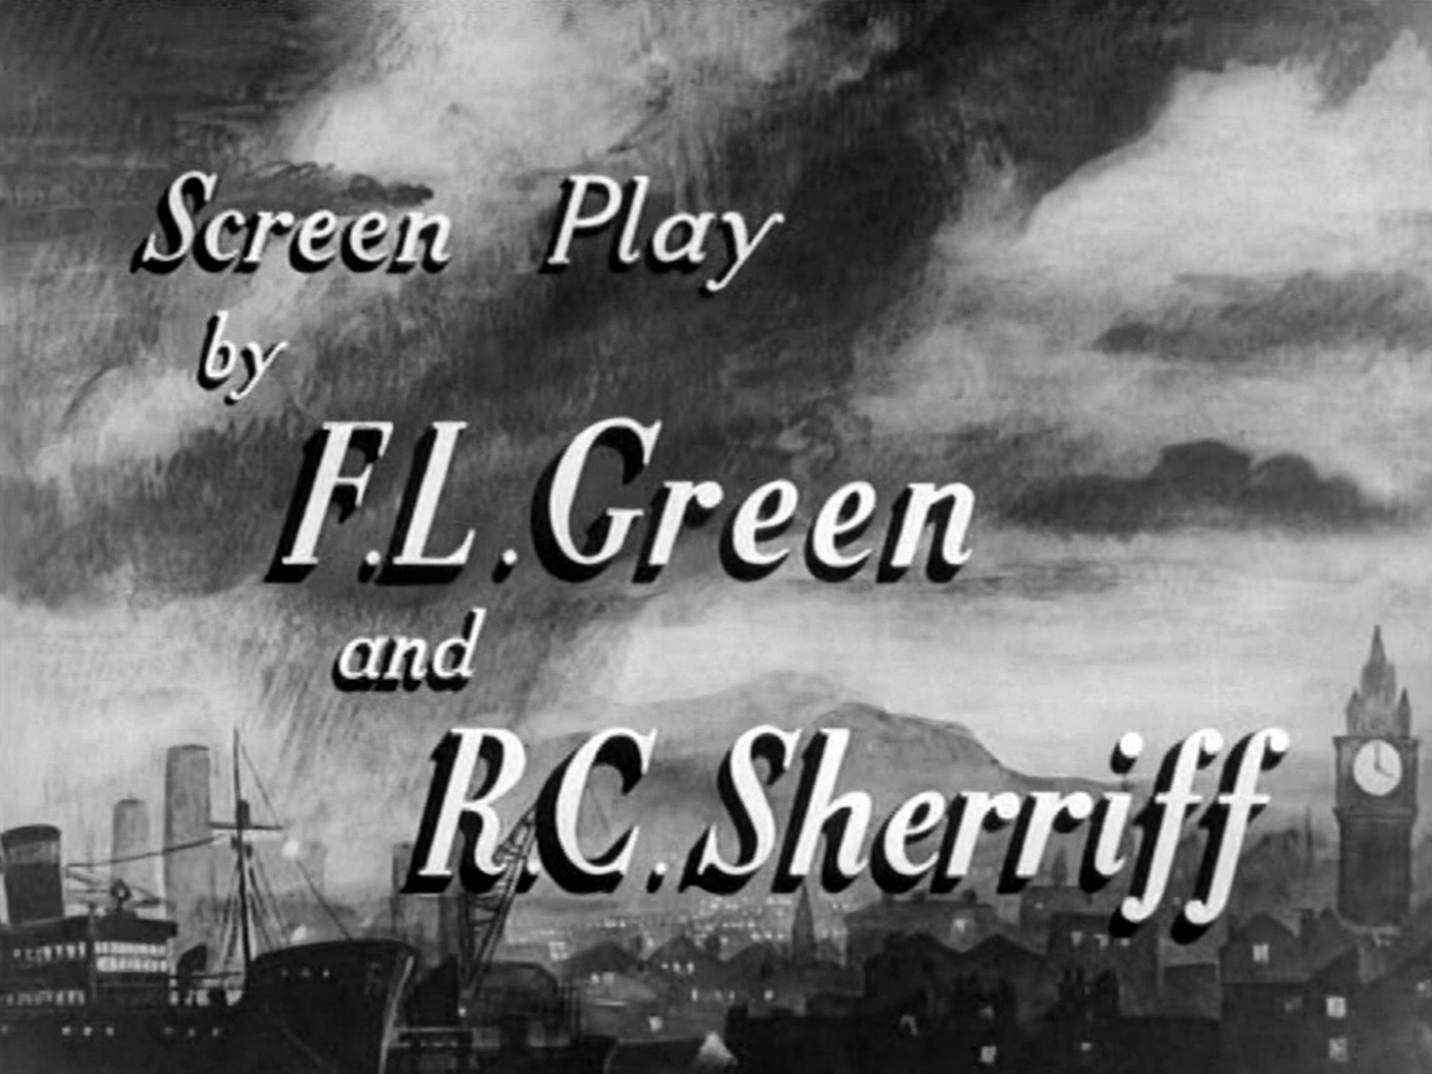 Main title from Odd Man Out (1947) (10).  Screen play by F L Green and R C Sherriff